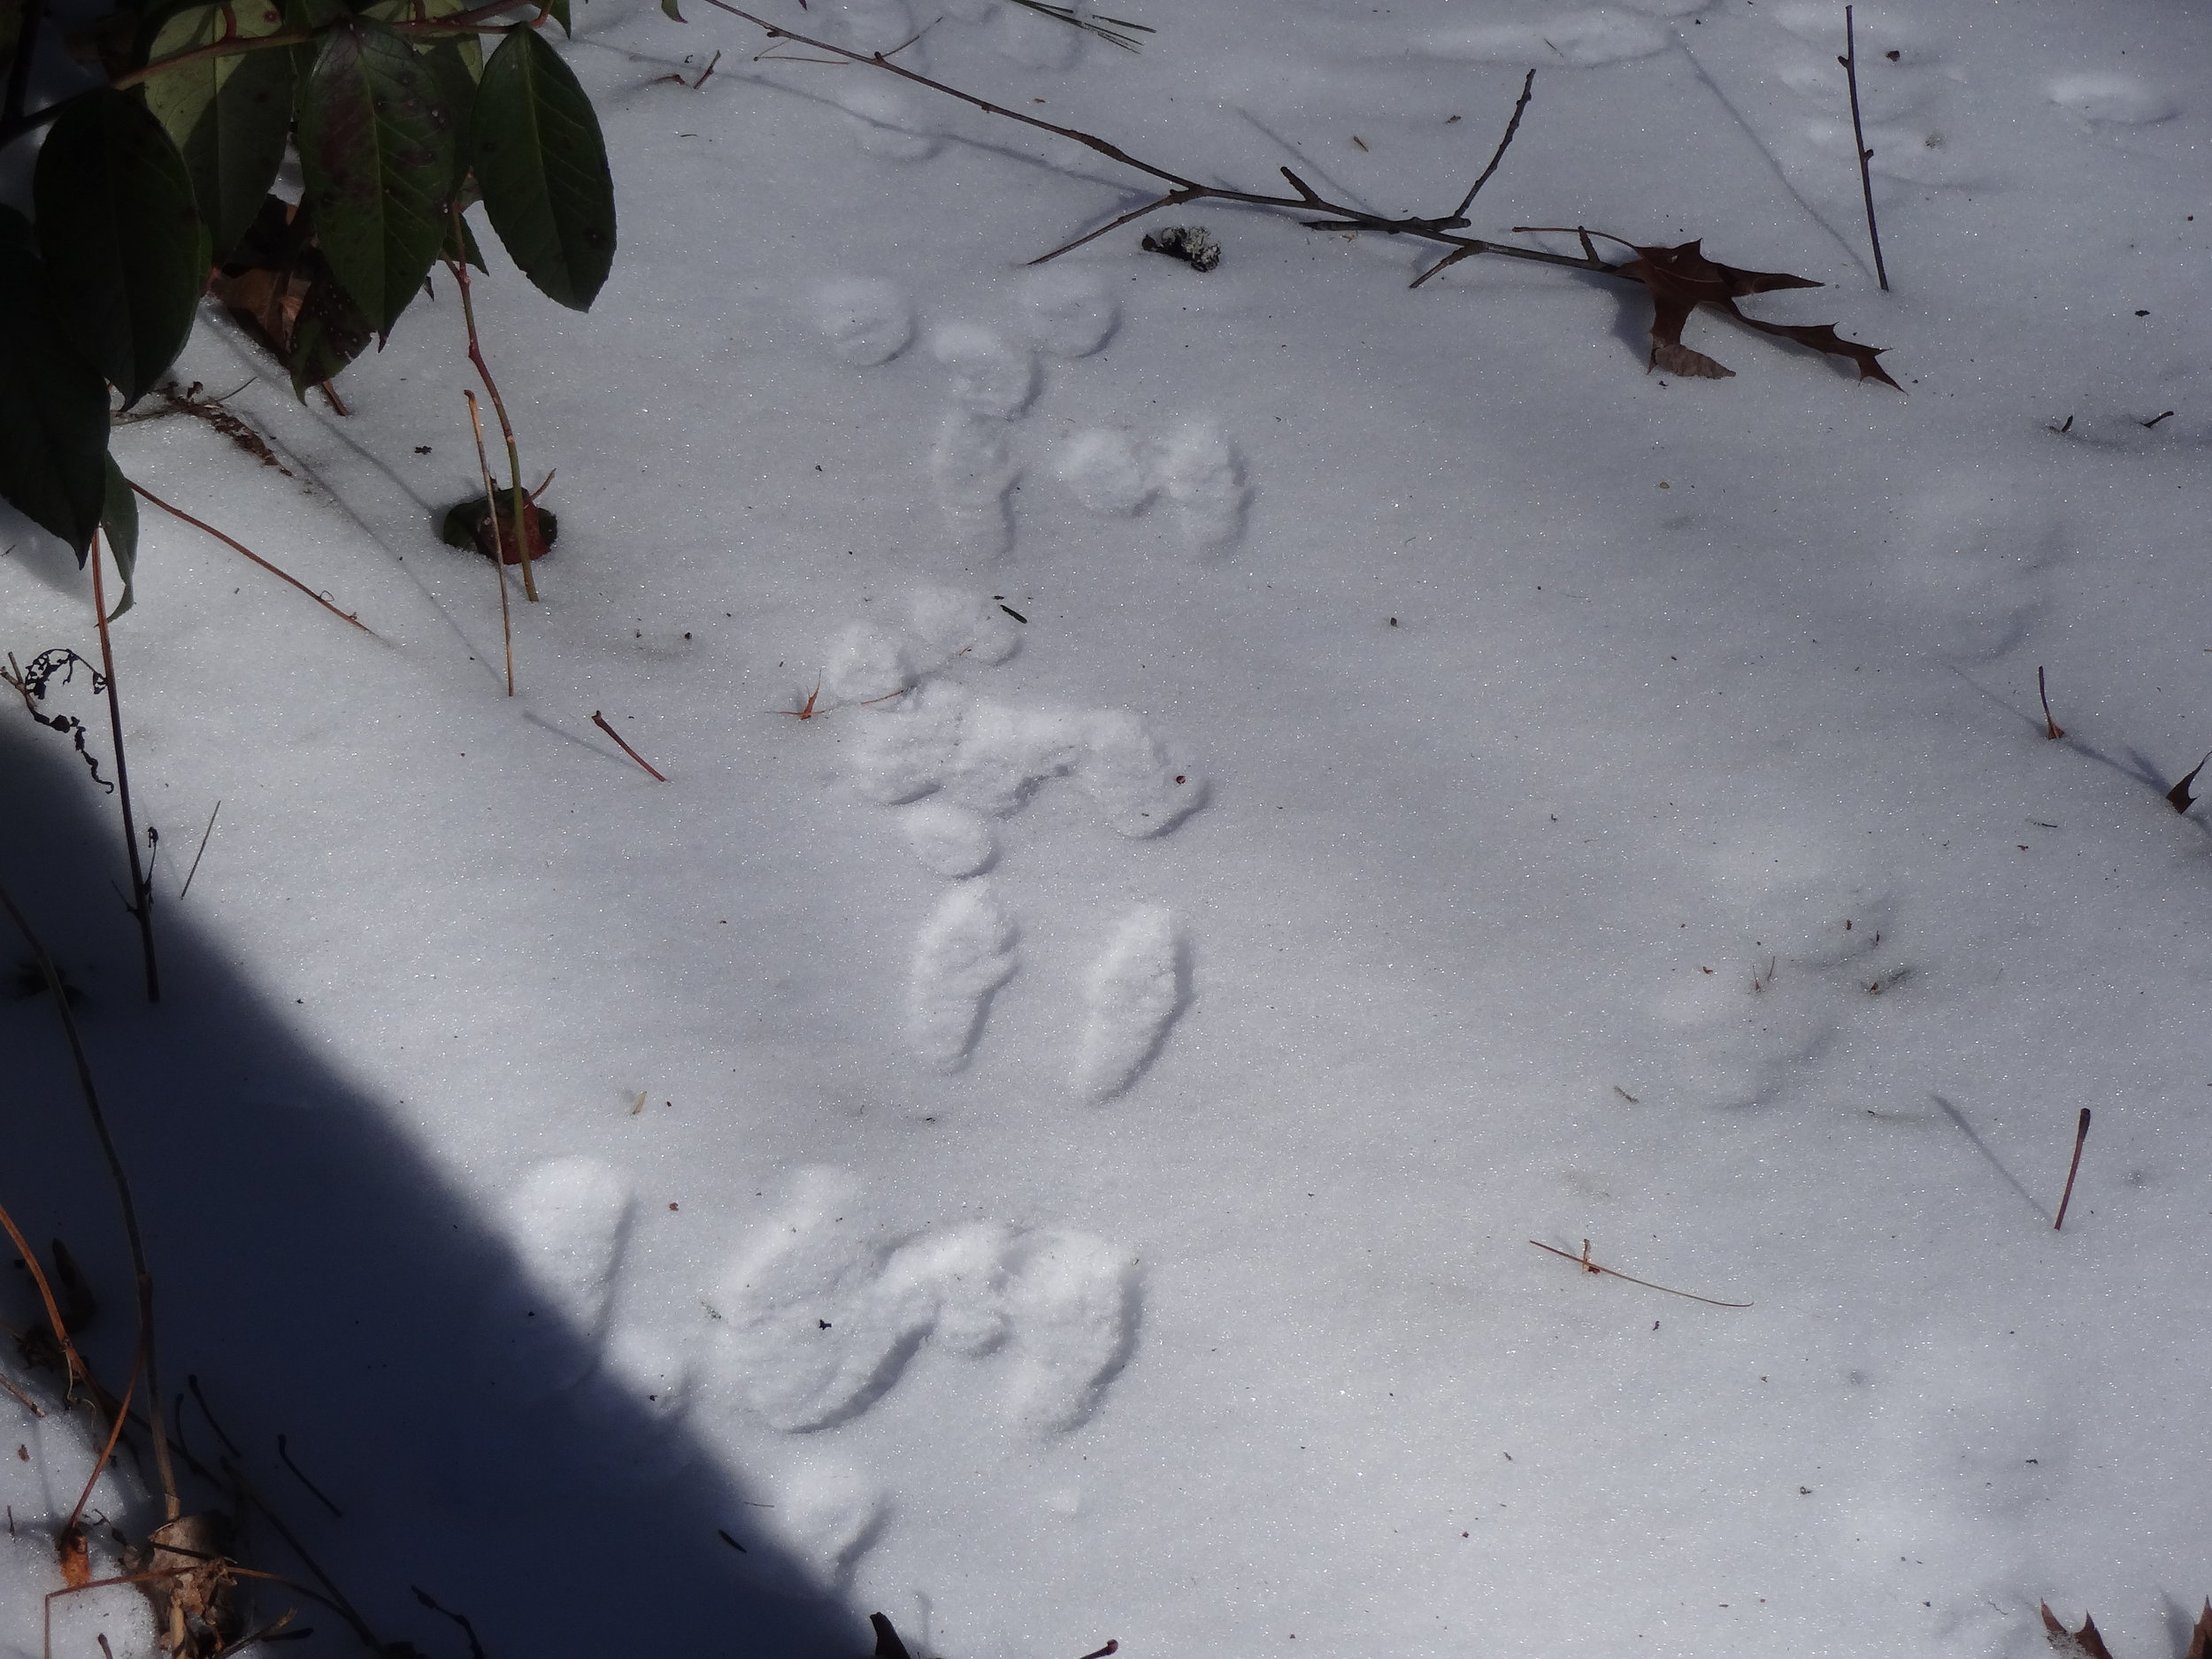 Snow reveals activities of rabbits